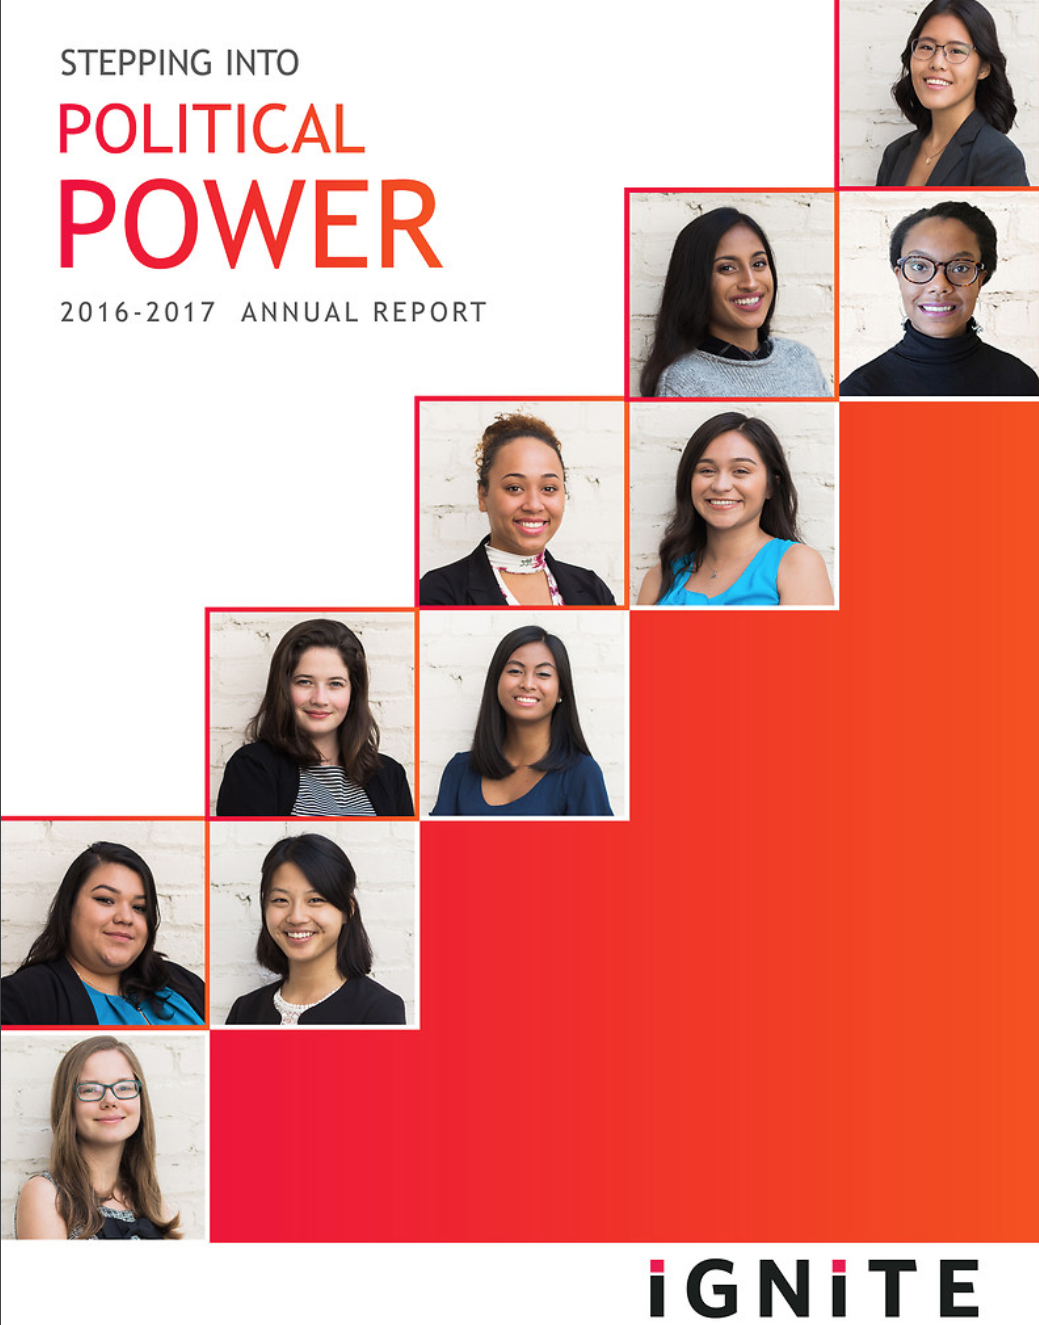 Ignite national annual report stepping into political power